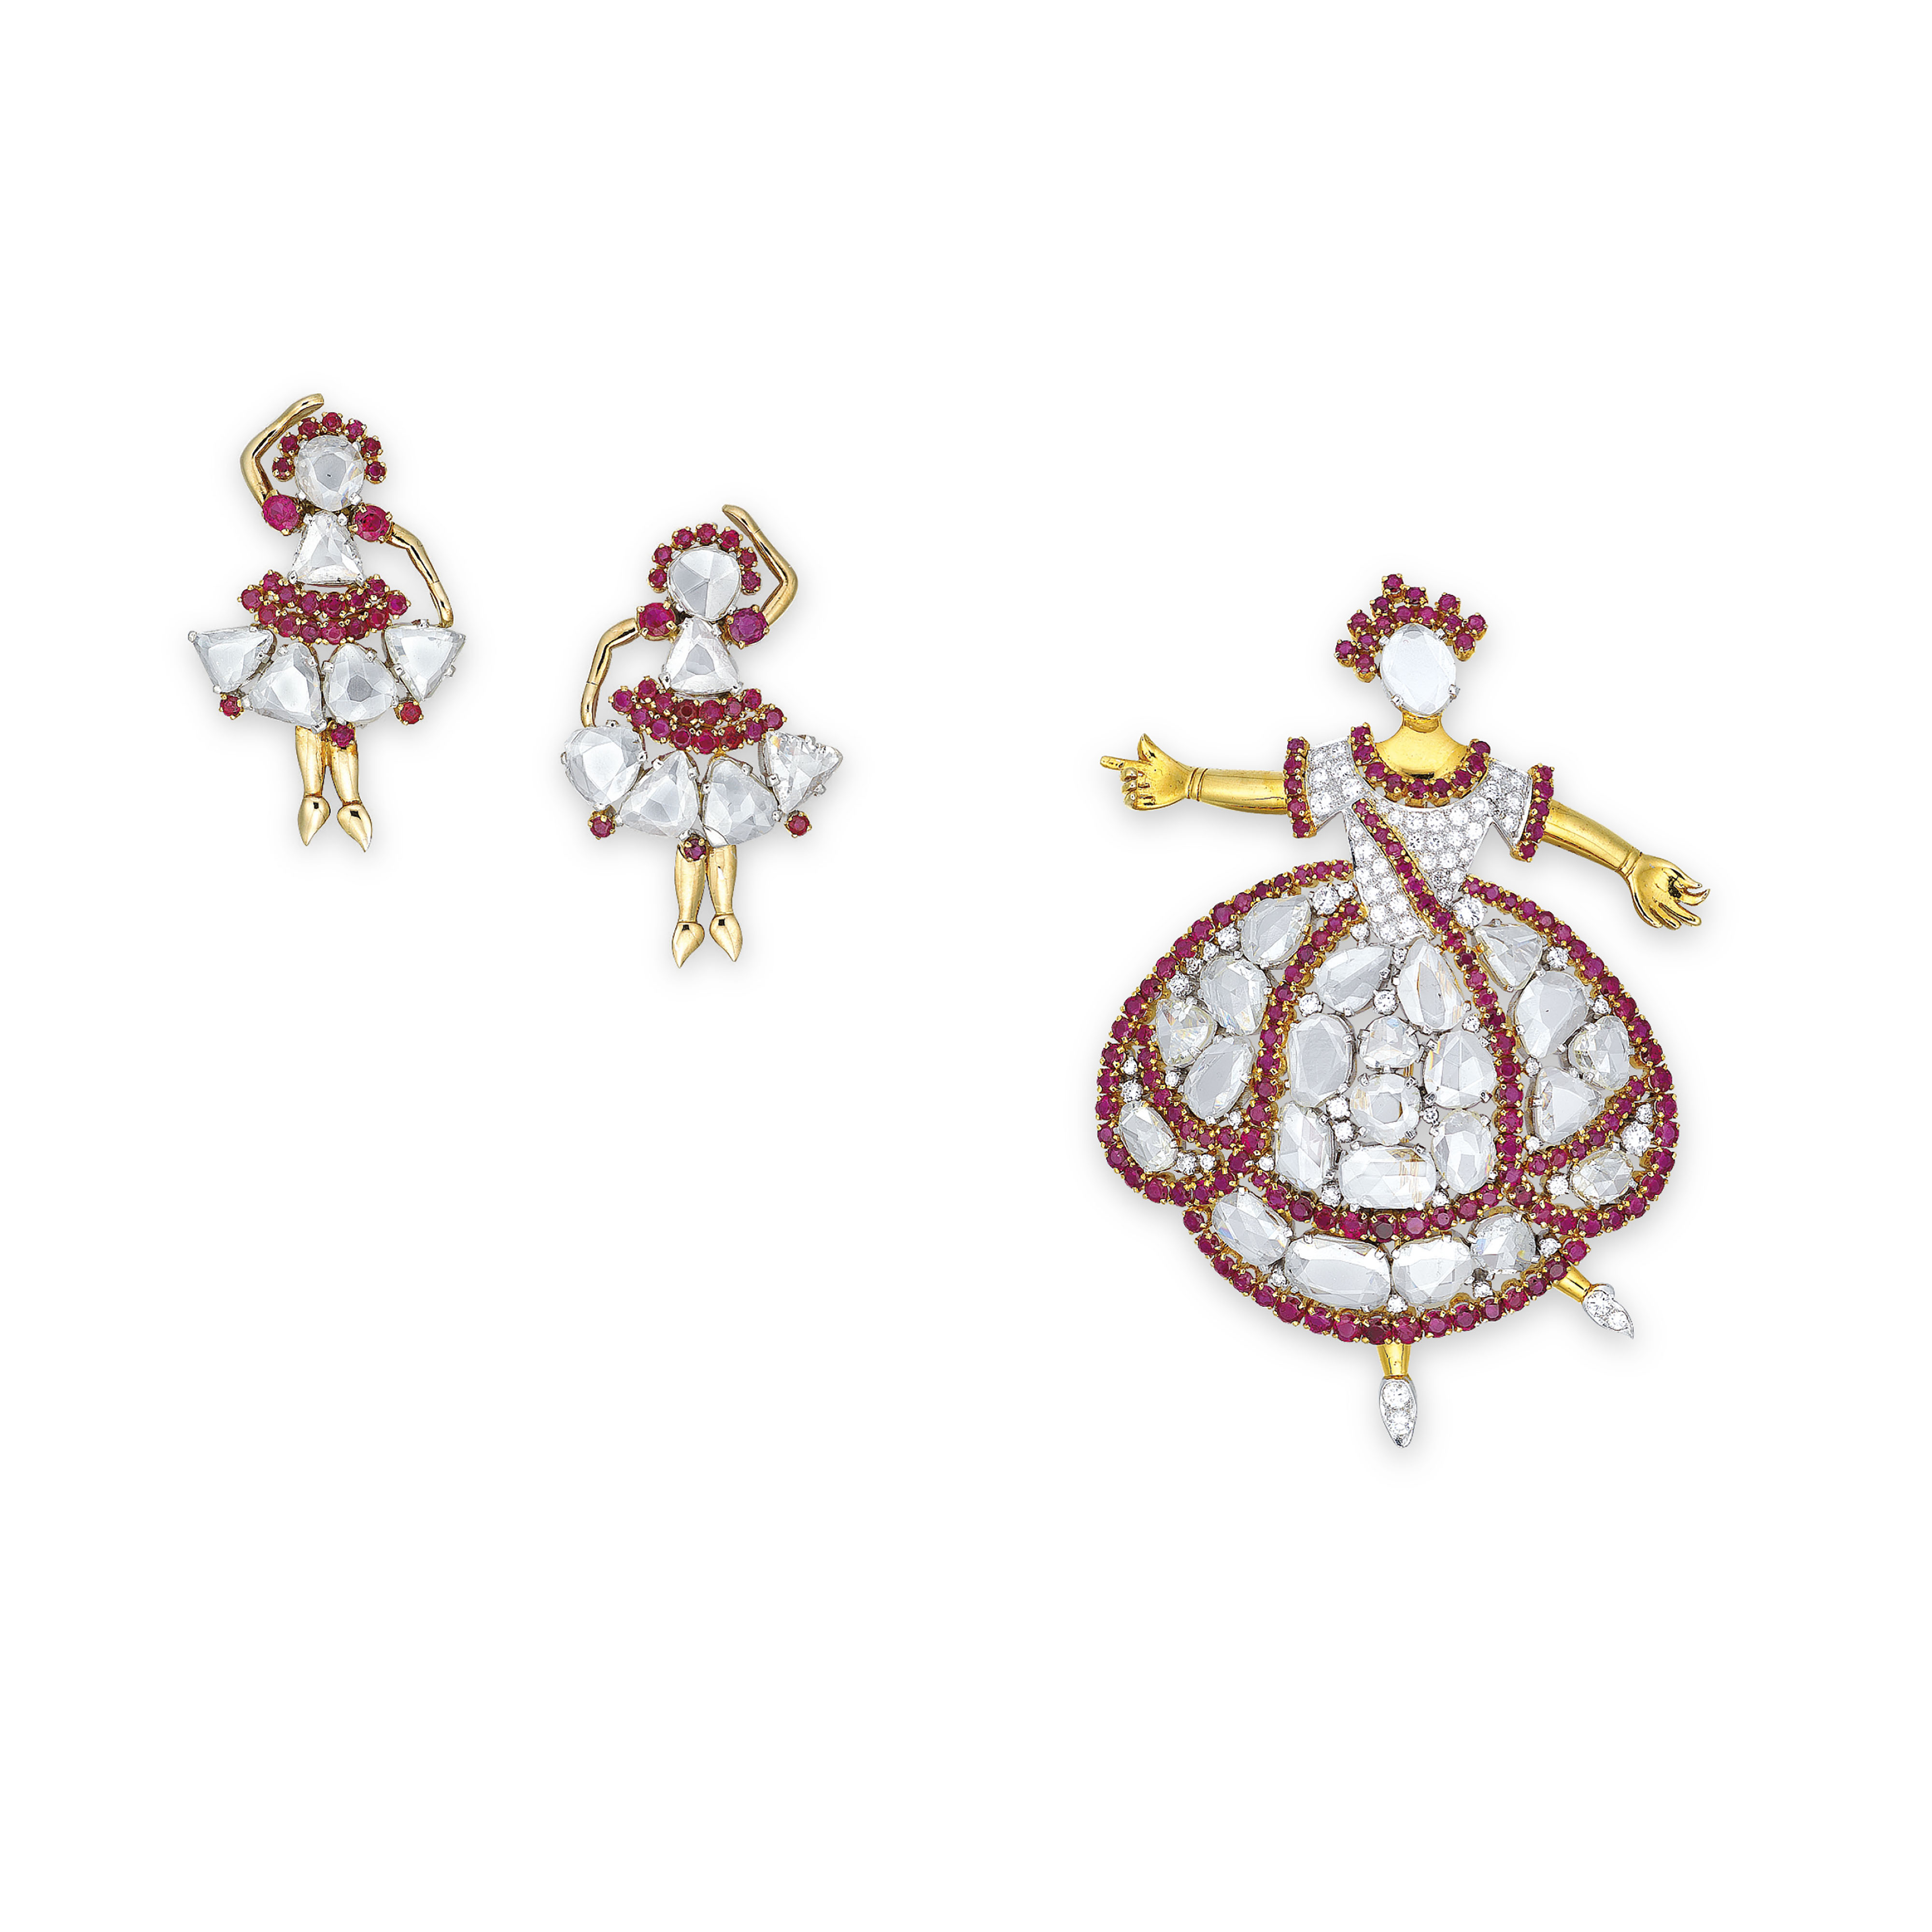 A SET OF DIAMOND AND RUBY JEWE